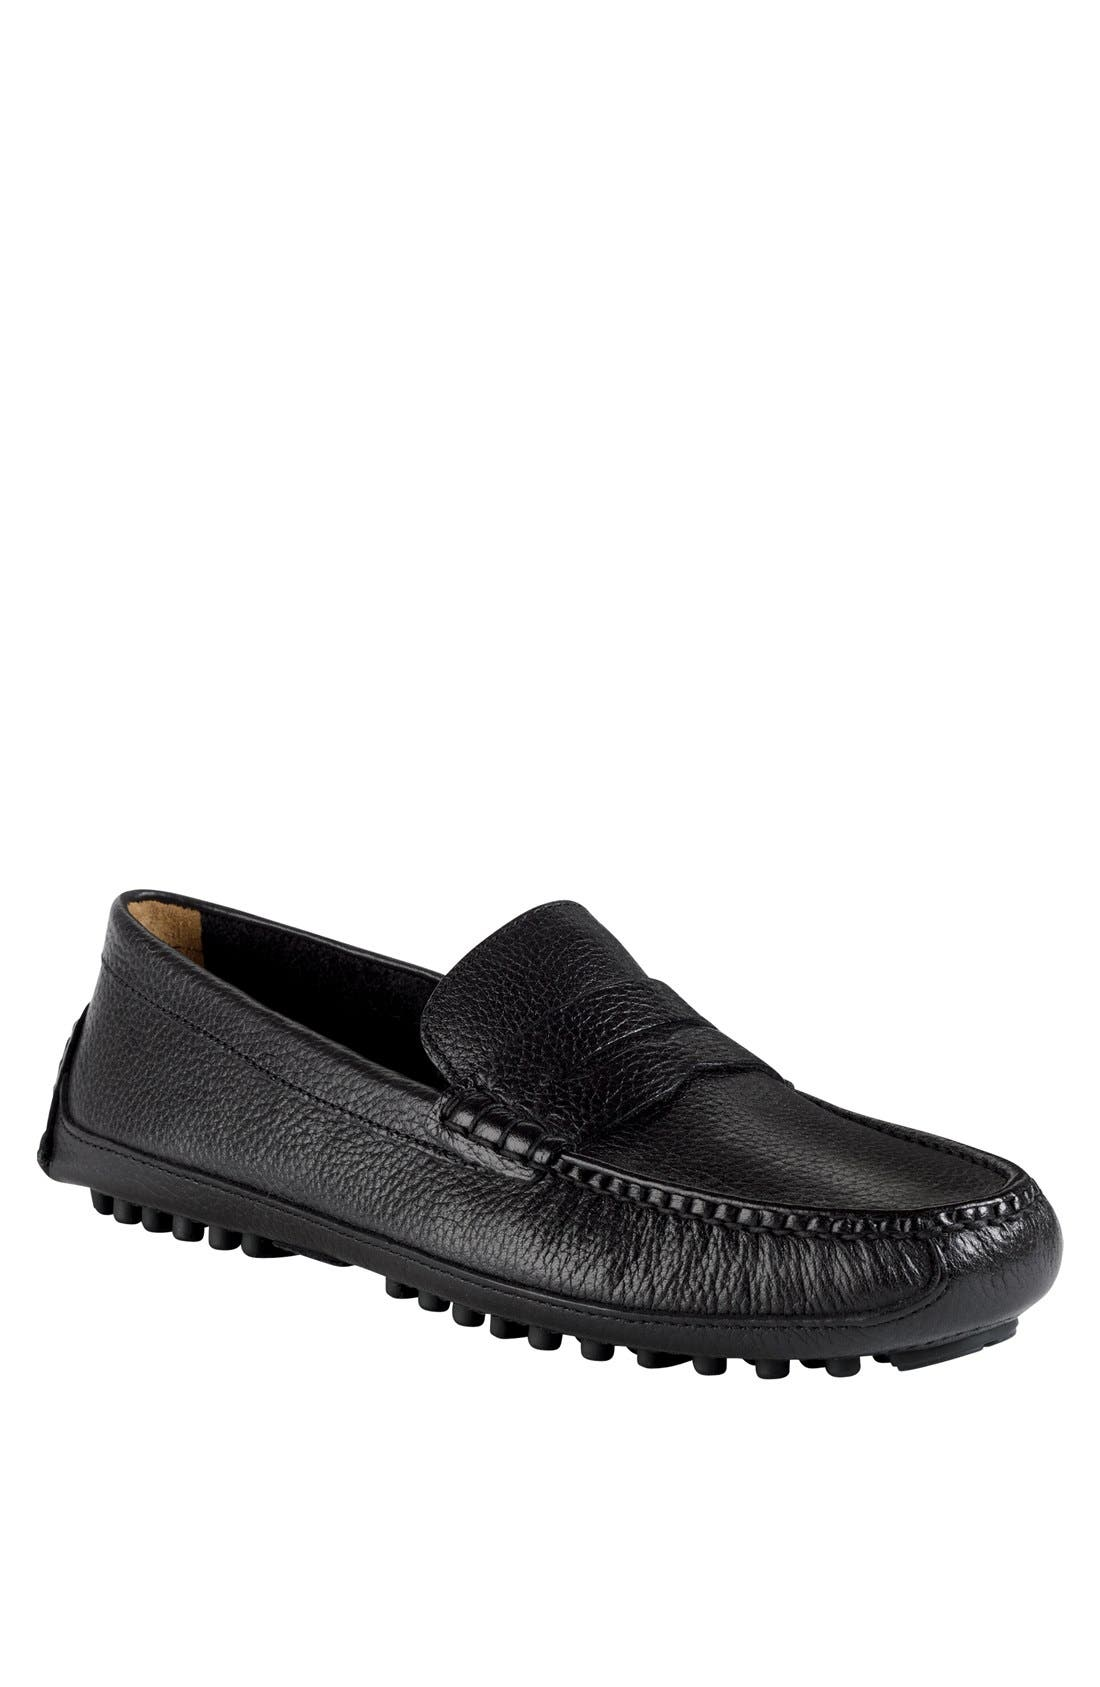 COLE HAAN 'Grant Canoe' Penny Loafer, Main, color, 001